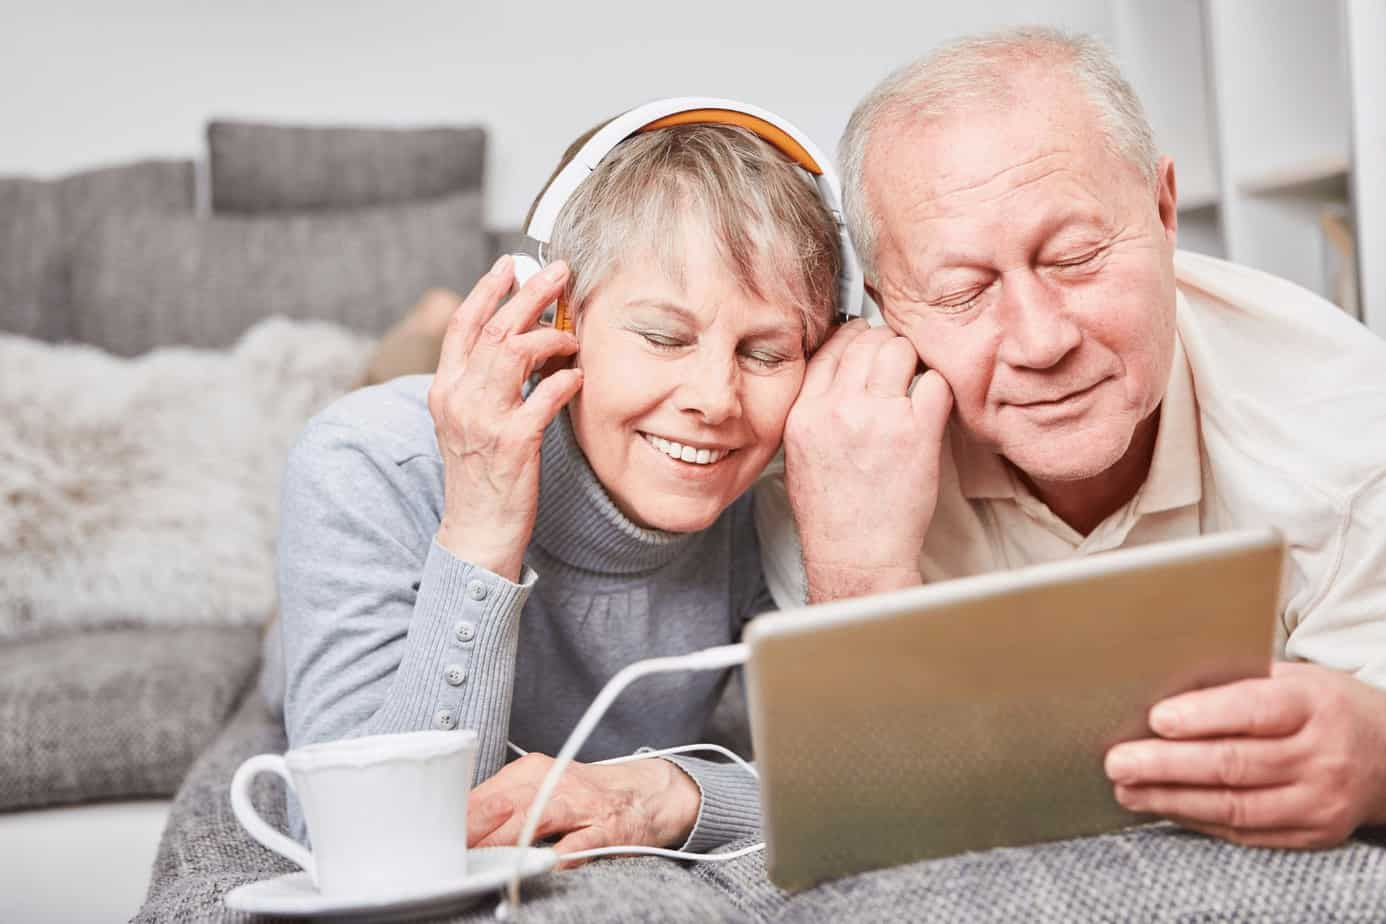 a senior couple listening to old music using a tablet and headset